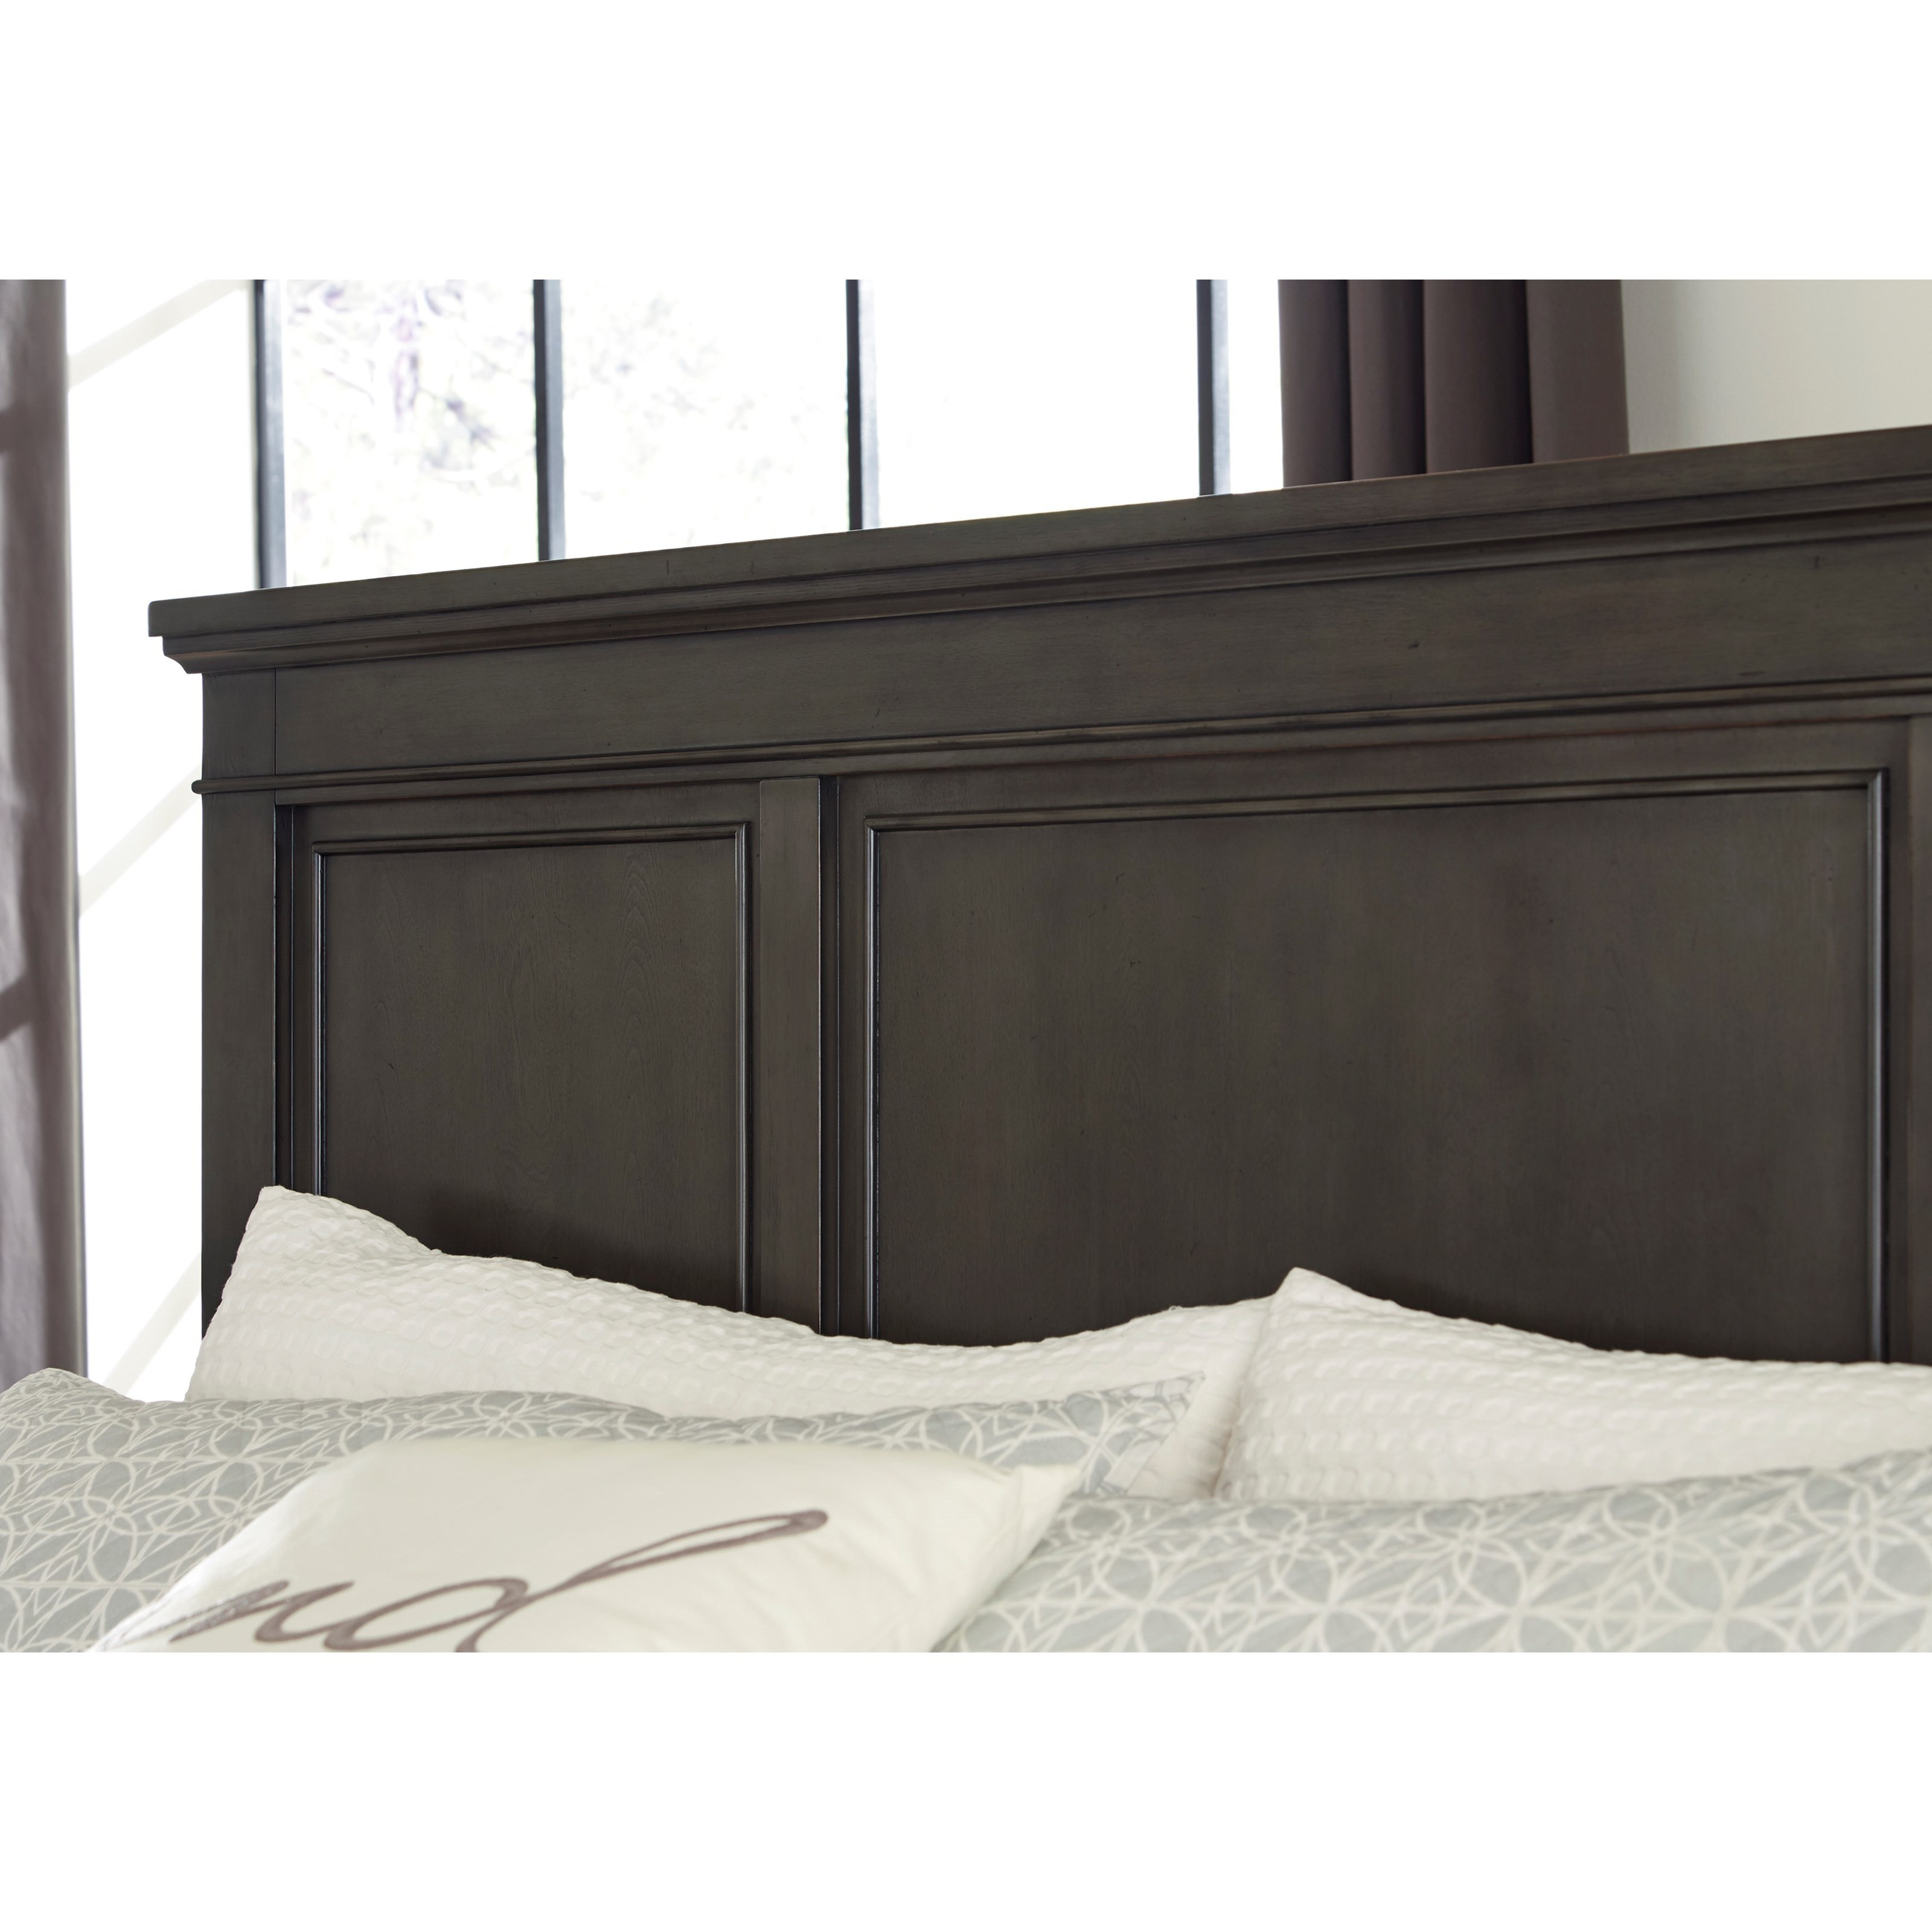 B705 58 Ck Ashley Furniture California King Sleigh Bed: Signature Design By Ashley Devensted Transitional